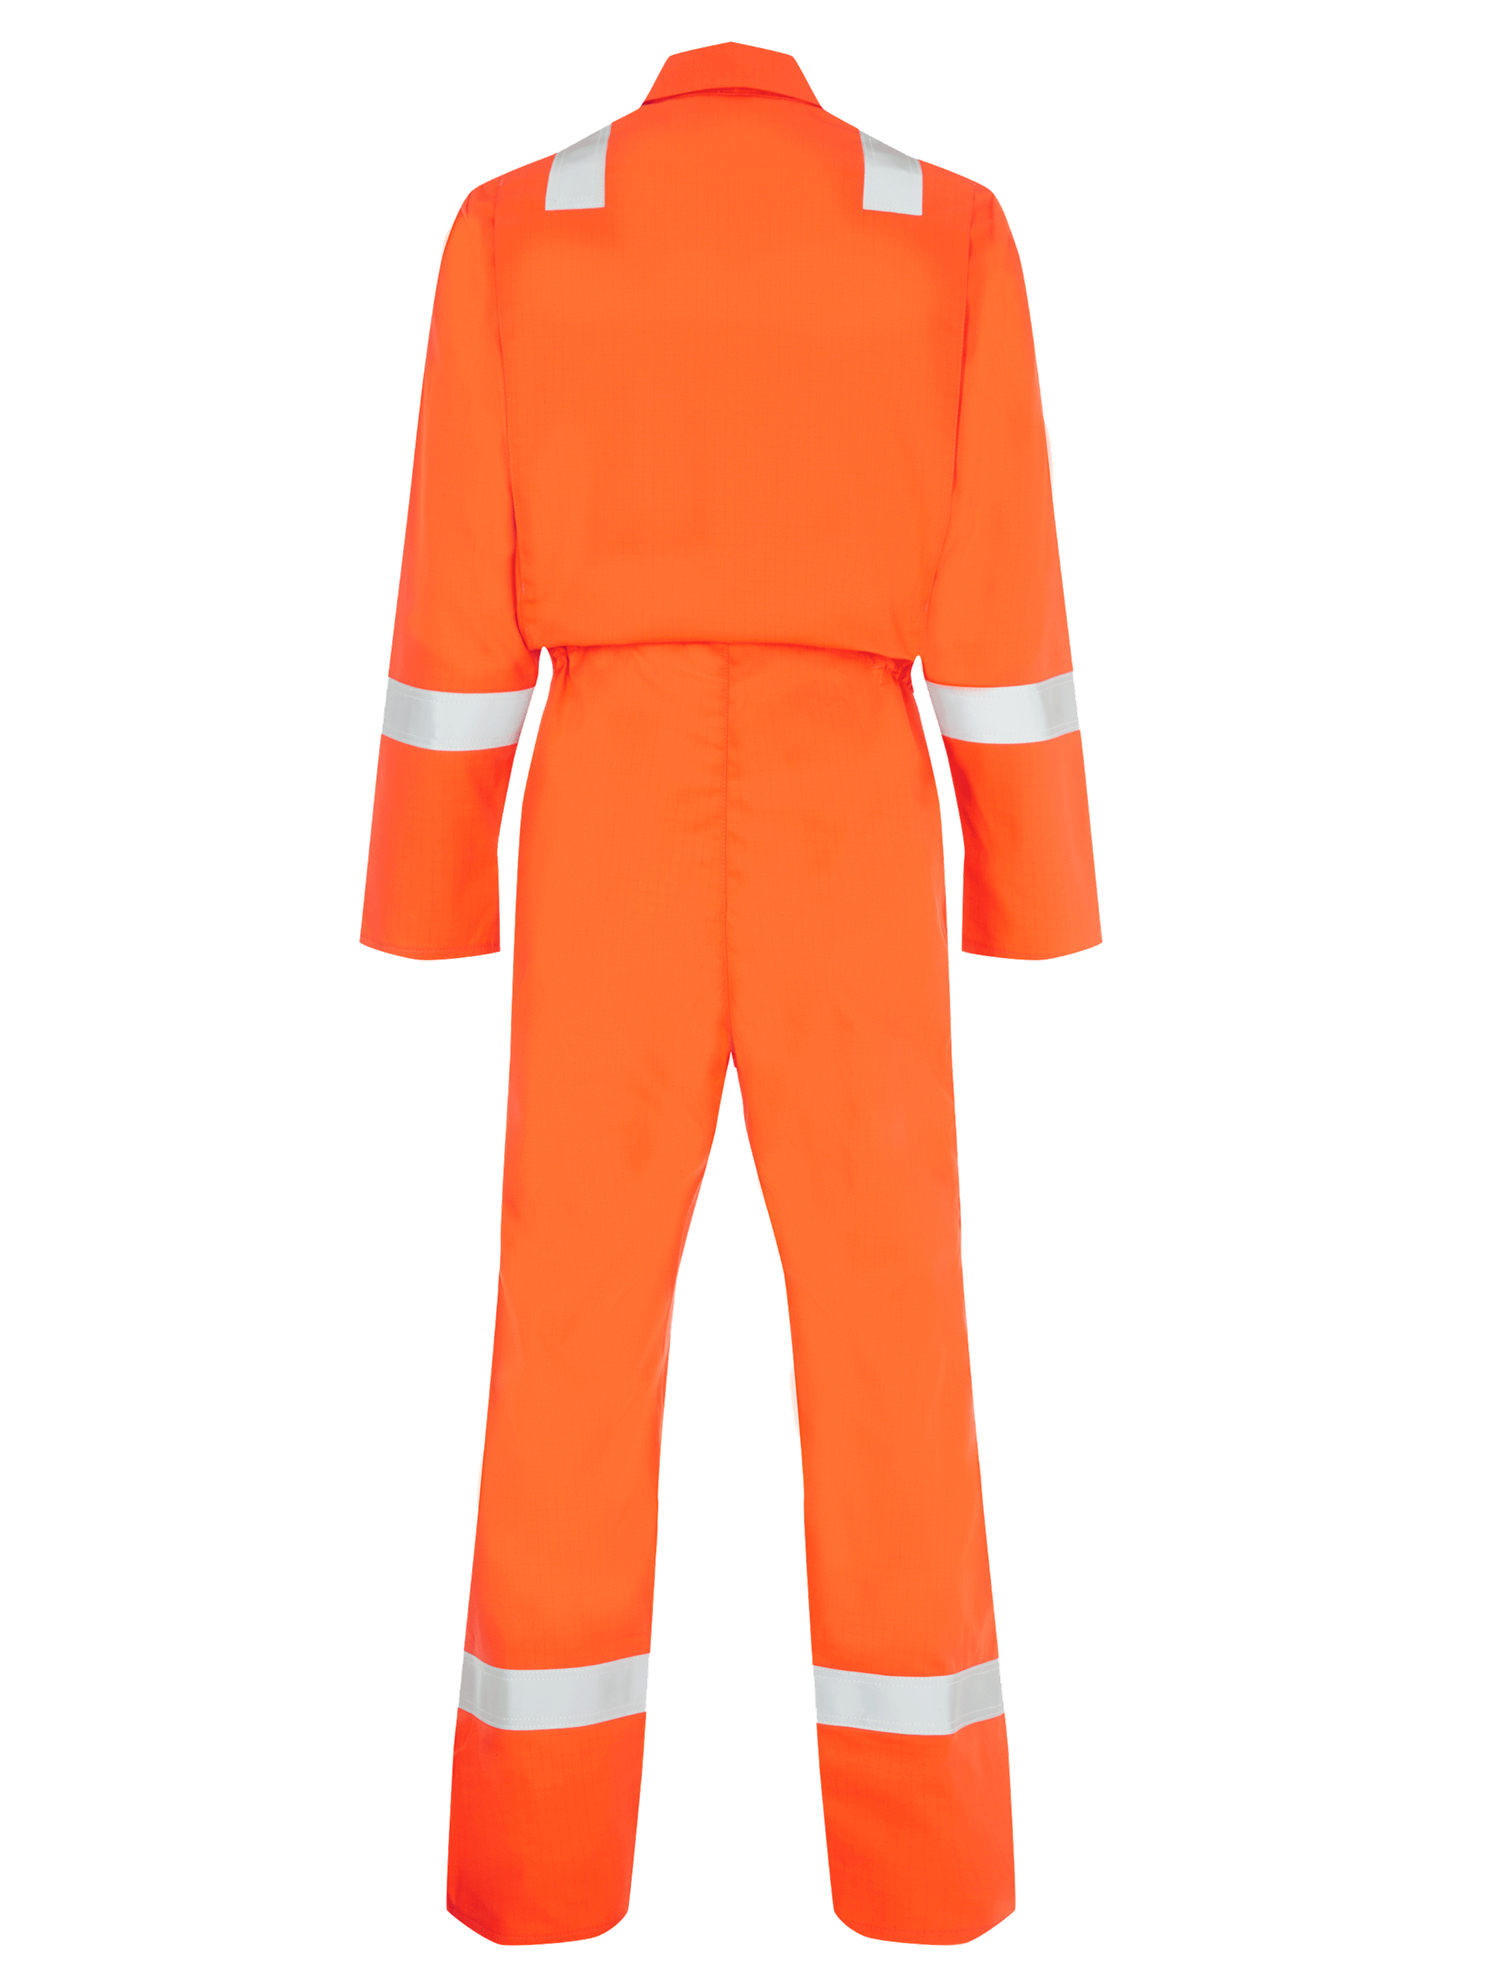 Picture of FR Anti-Static Coverall - Orange